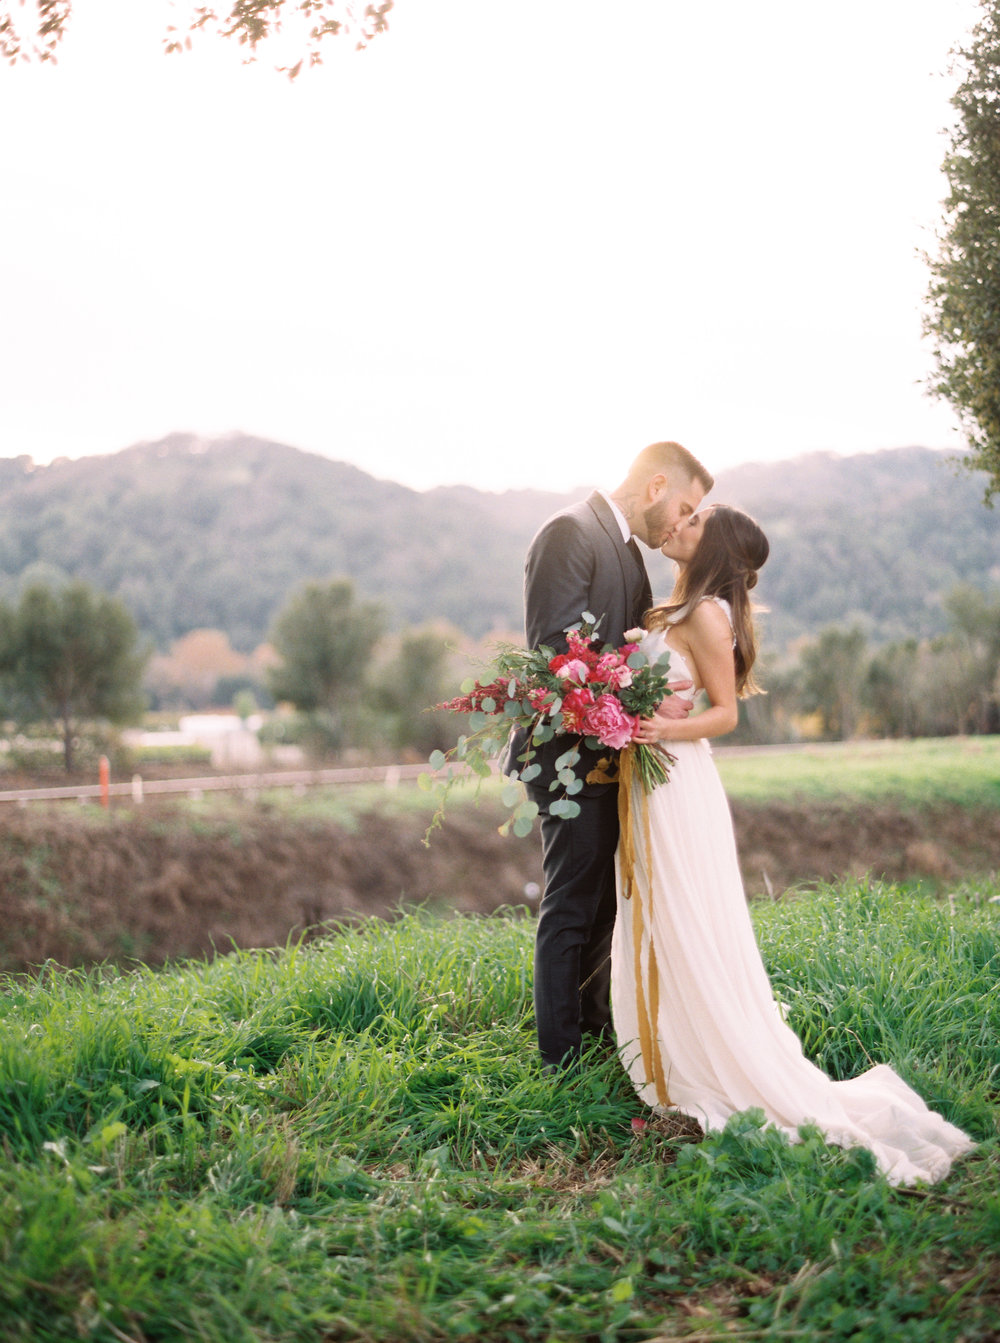 boho-inspired-wedding-at-casa-bella-in-sunol-california-50.jpg